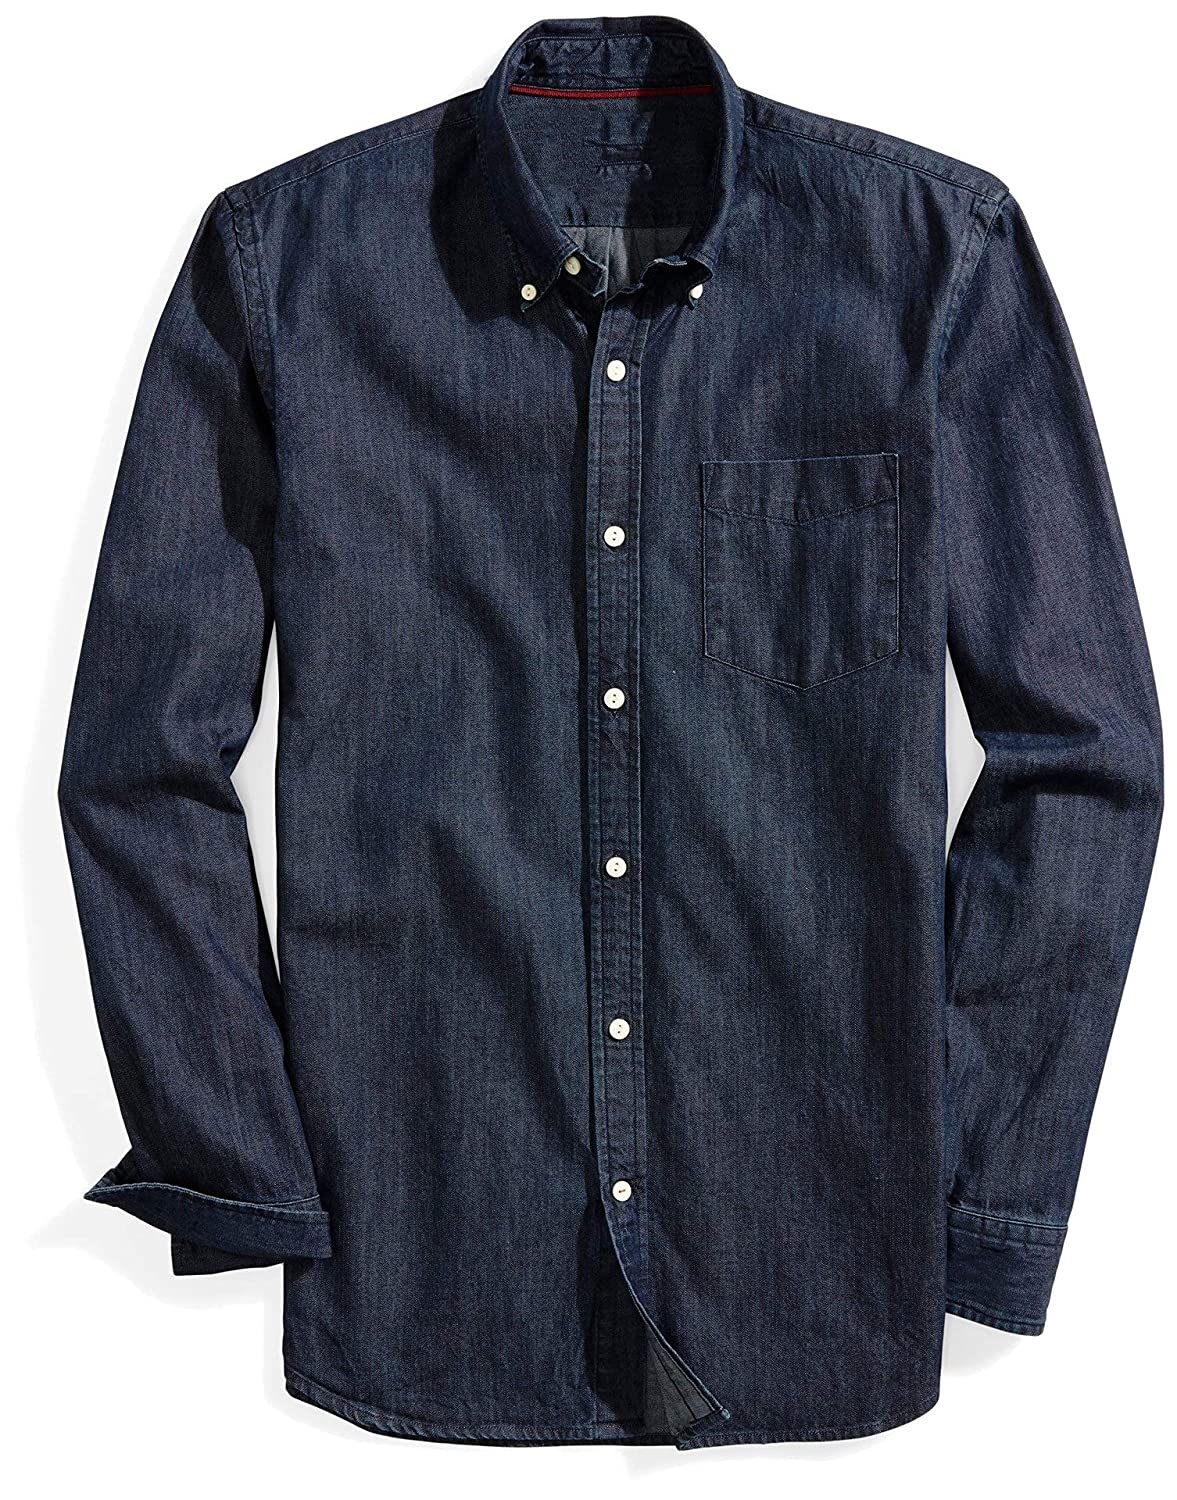 Abetteric Mens Single-Breasted Retro Plus Size Jean Washed Work Shirt